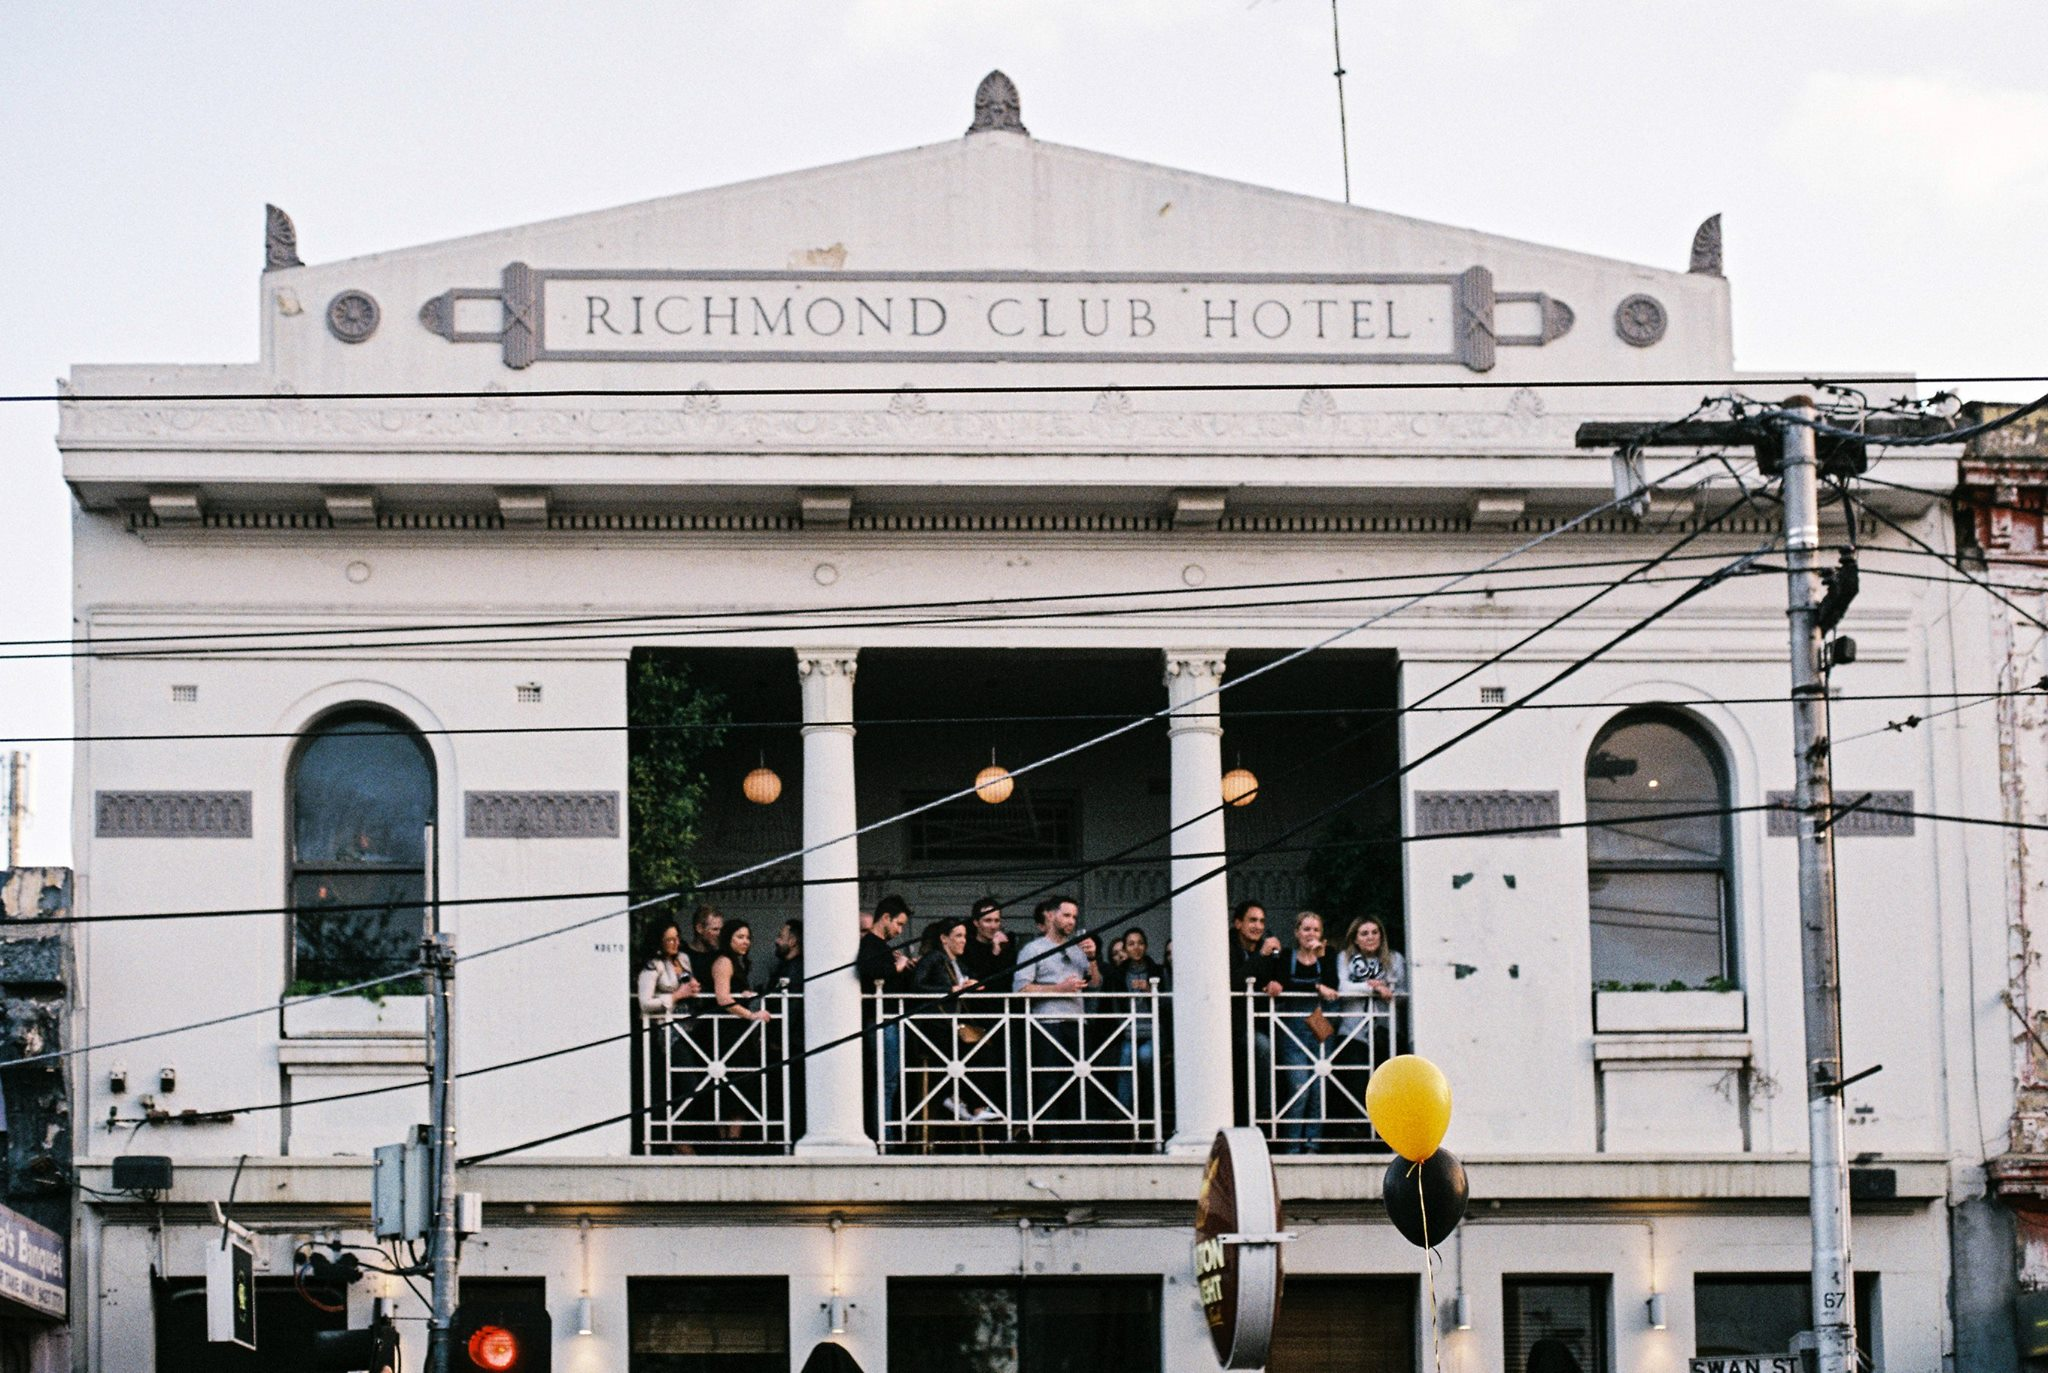 Pub Of The Week: Tony Leonard reviews the Richmond Club Hotel